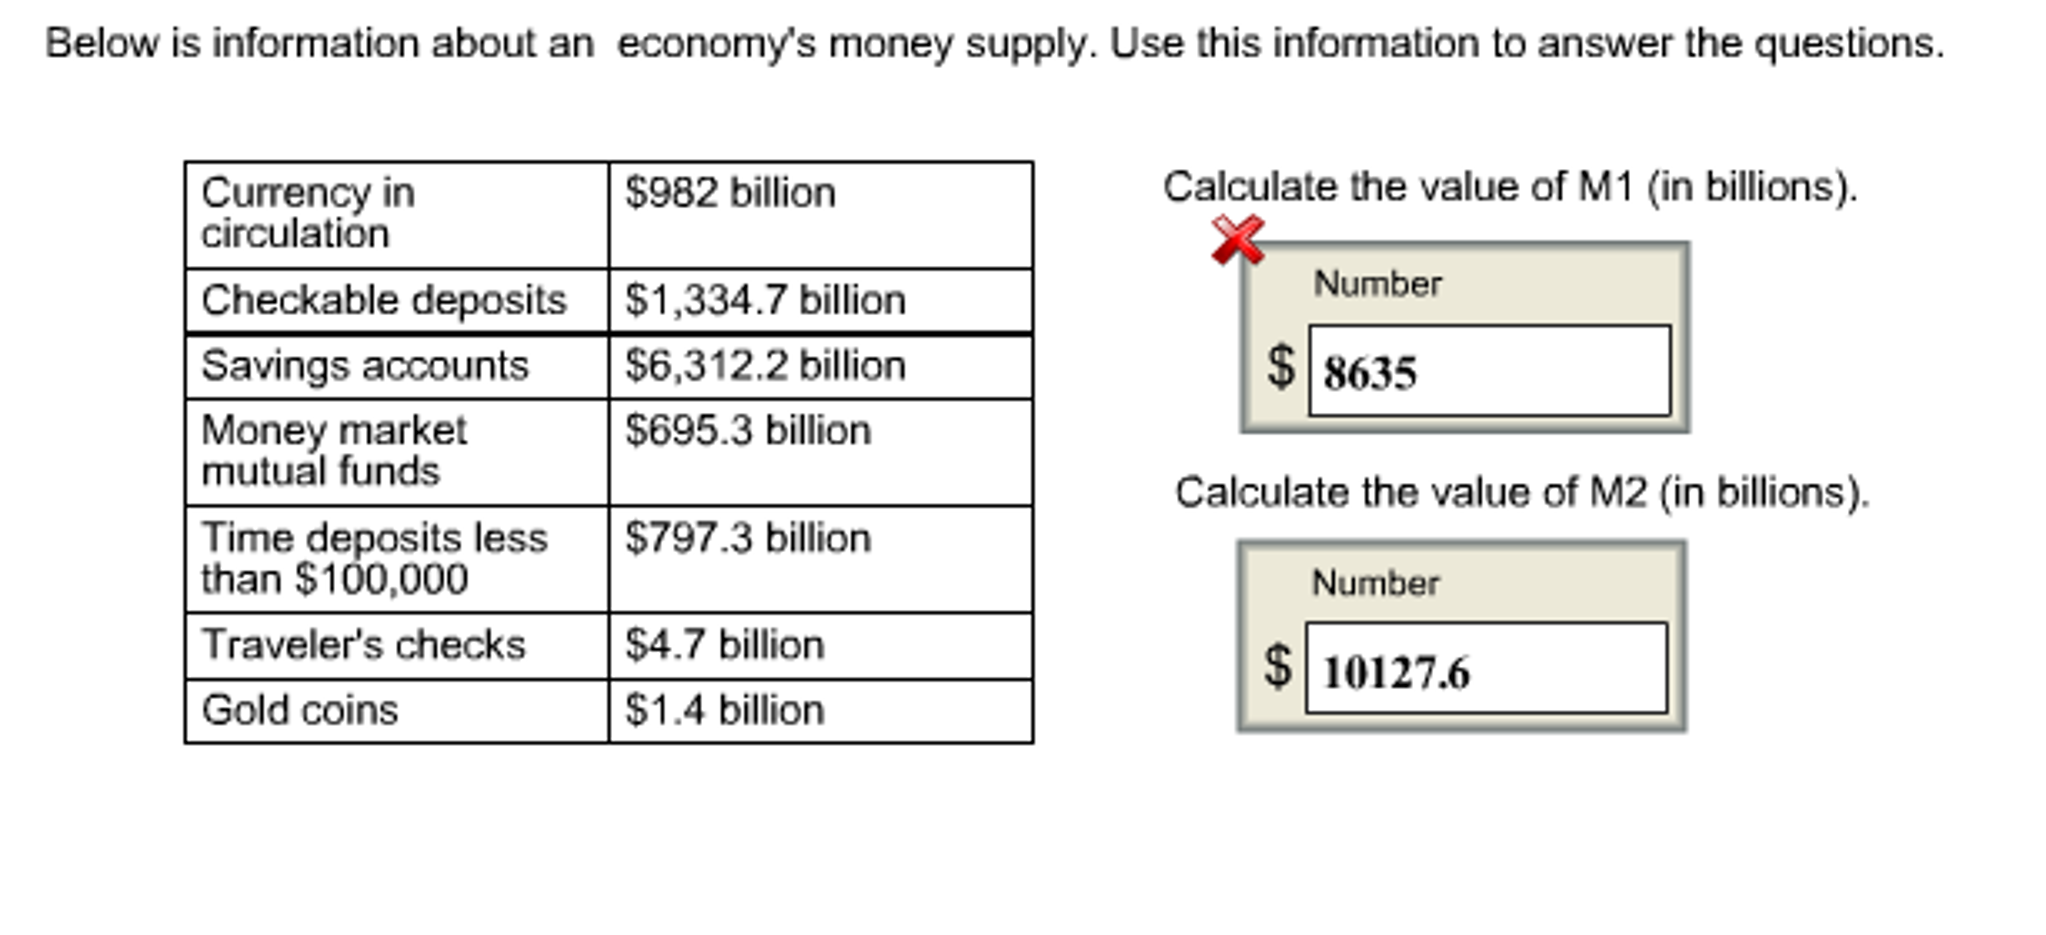 Below Isrmation About An Economy's Money Supply Use Thisrmation To Answer  The Questions Calculate The Value